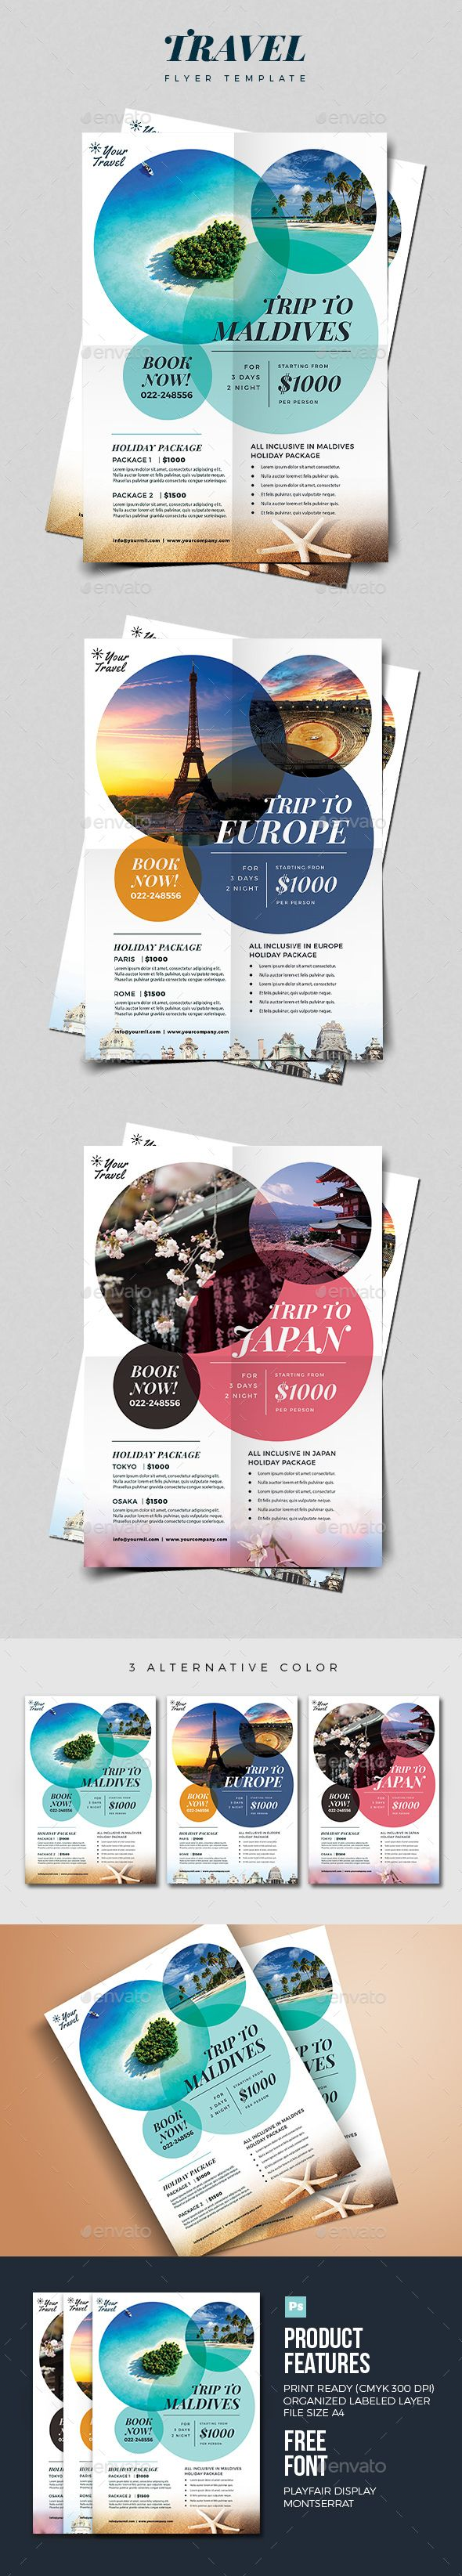 Travel Flyer — PSD Template #ad #beach • Download ➝ https://graphicriver.net/item/travel-flyer/18480681?ref=pxcr